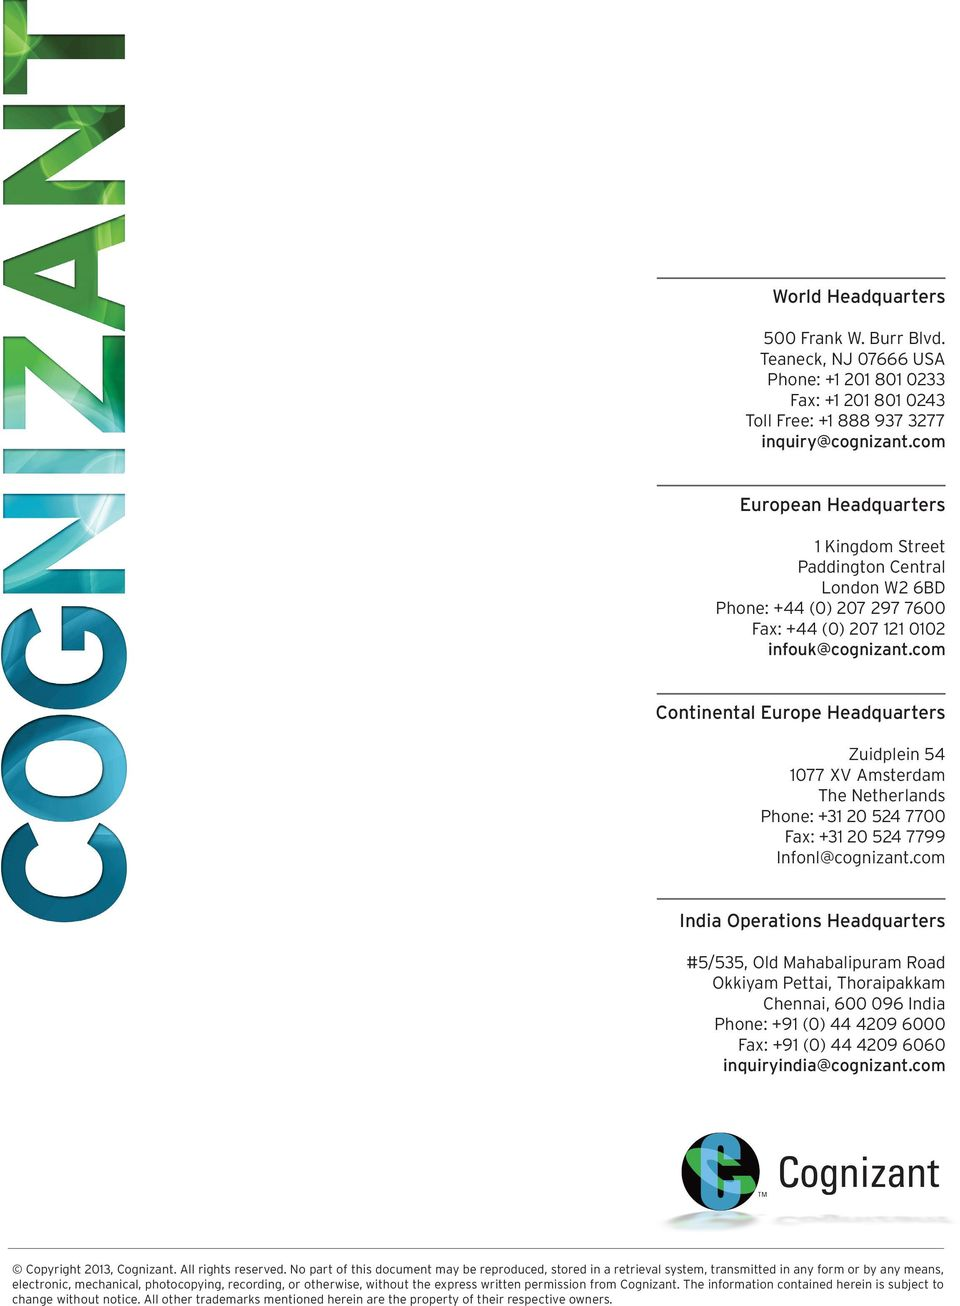 com Continental Europe Headquarters Zuidplein 54 1077 XV Amsterdam The Netherlands Phone: +31 20 524 7700 Fax: +31 20 524 7799 Infonl@cognizant.